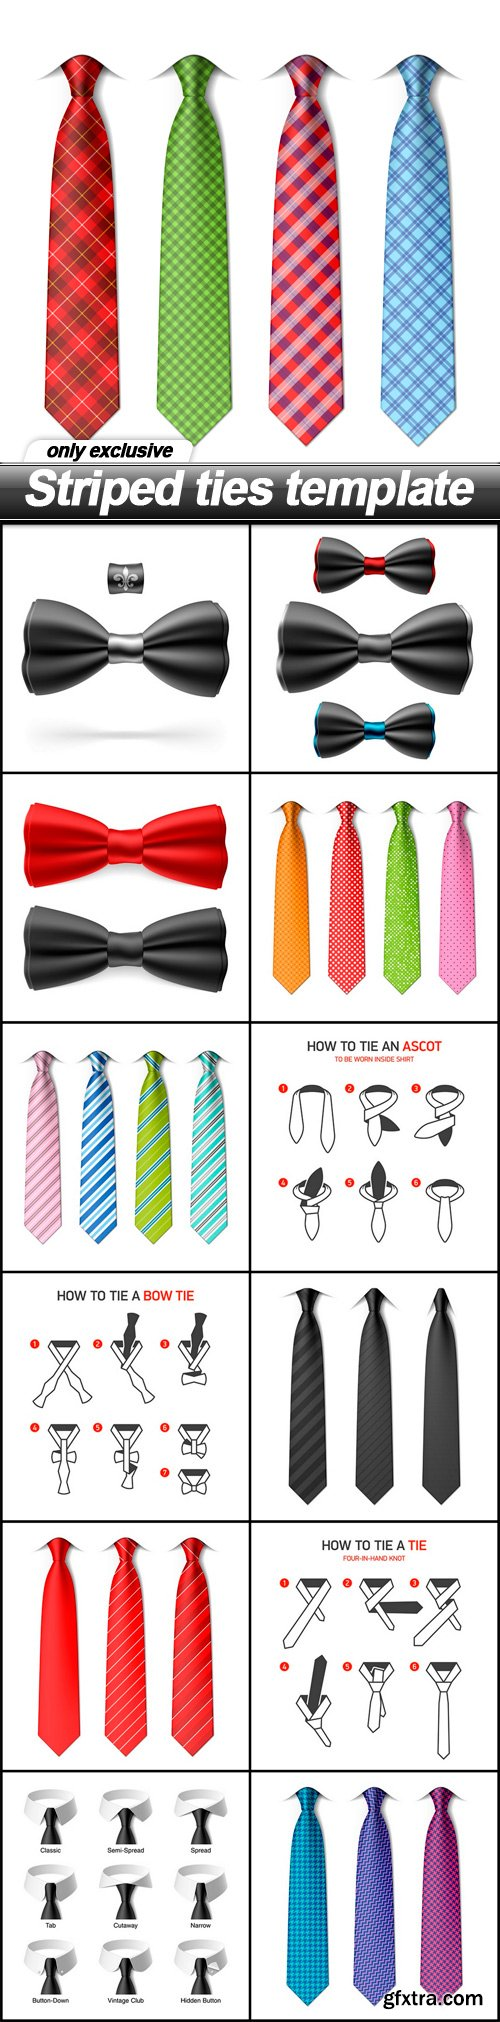 Striped ties template - 13 EPS